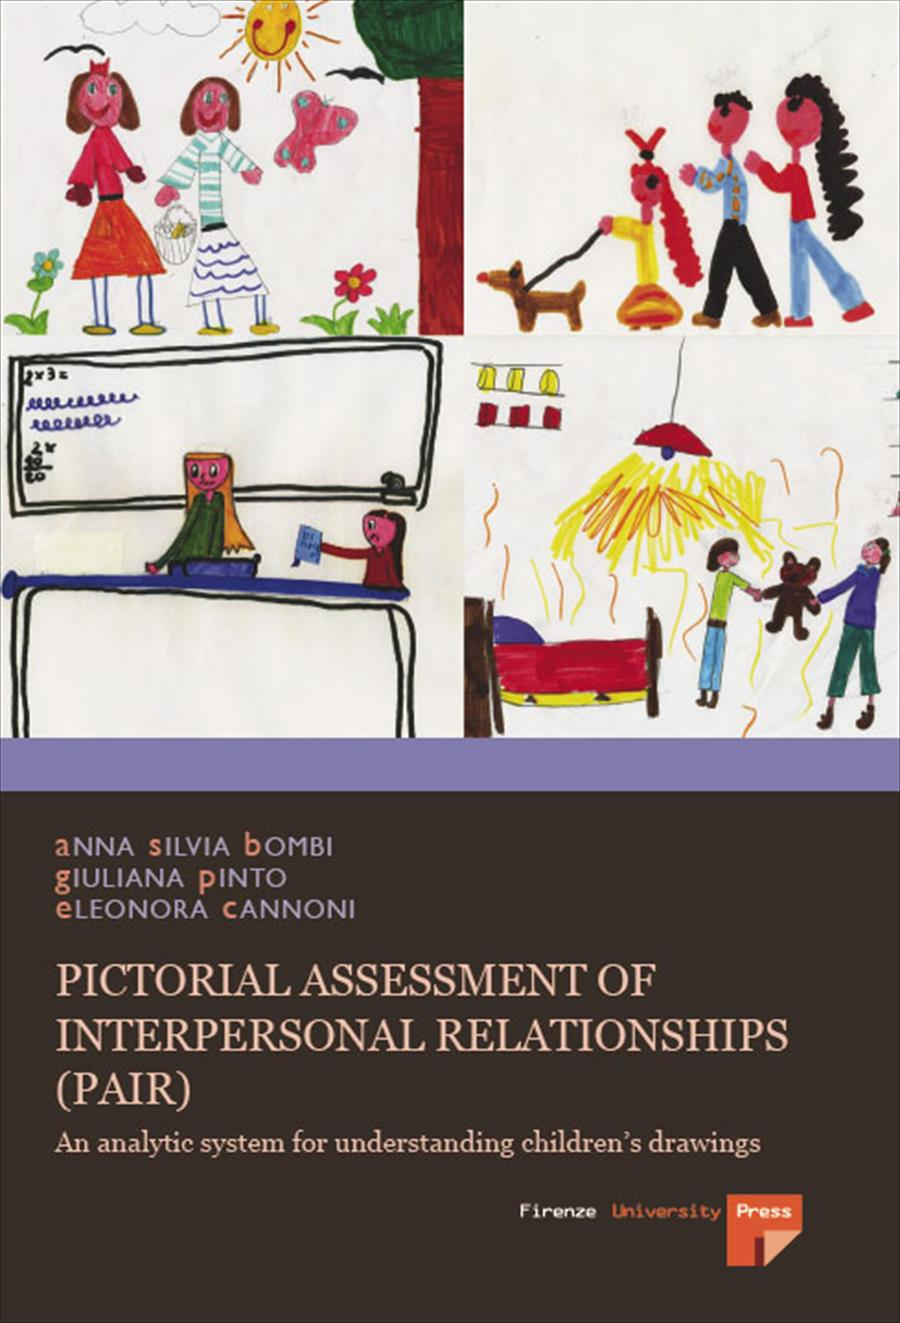 Pictorial Assessment of Interpersonal Relationships (PAIR)